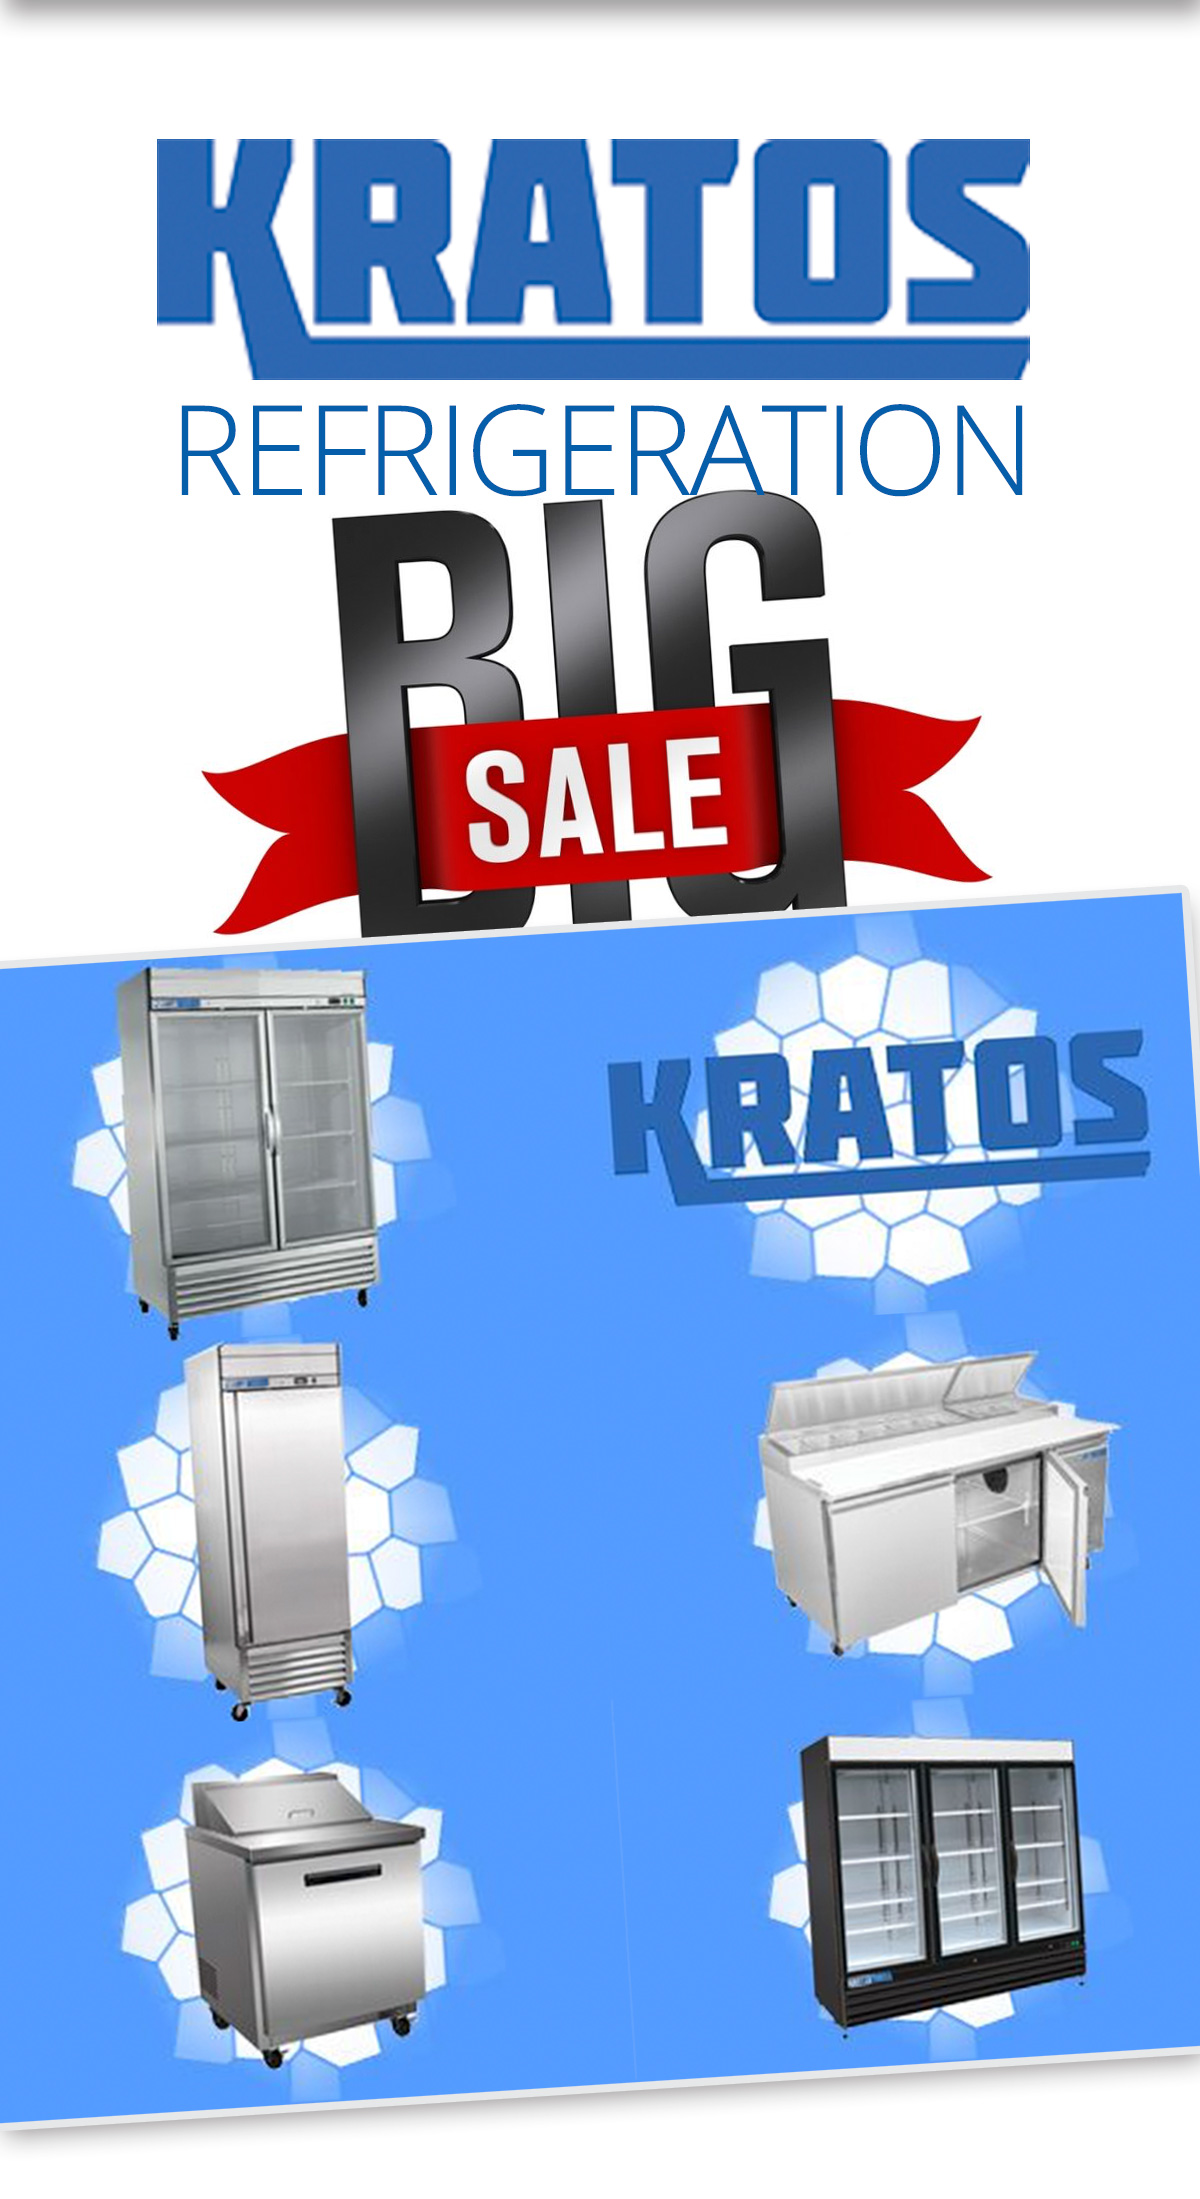 Kratos Refrigeration Sale - Shop Today!